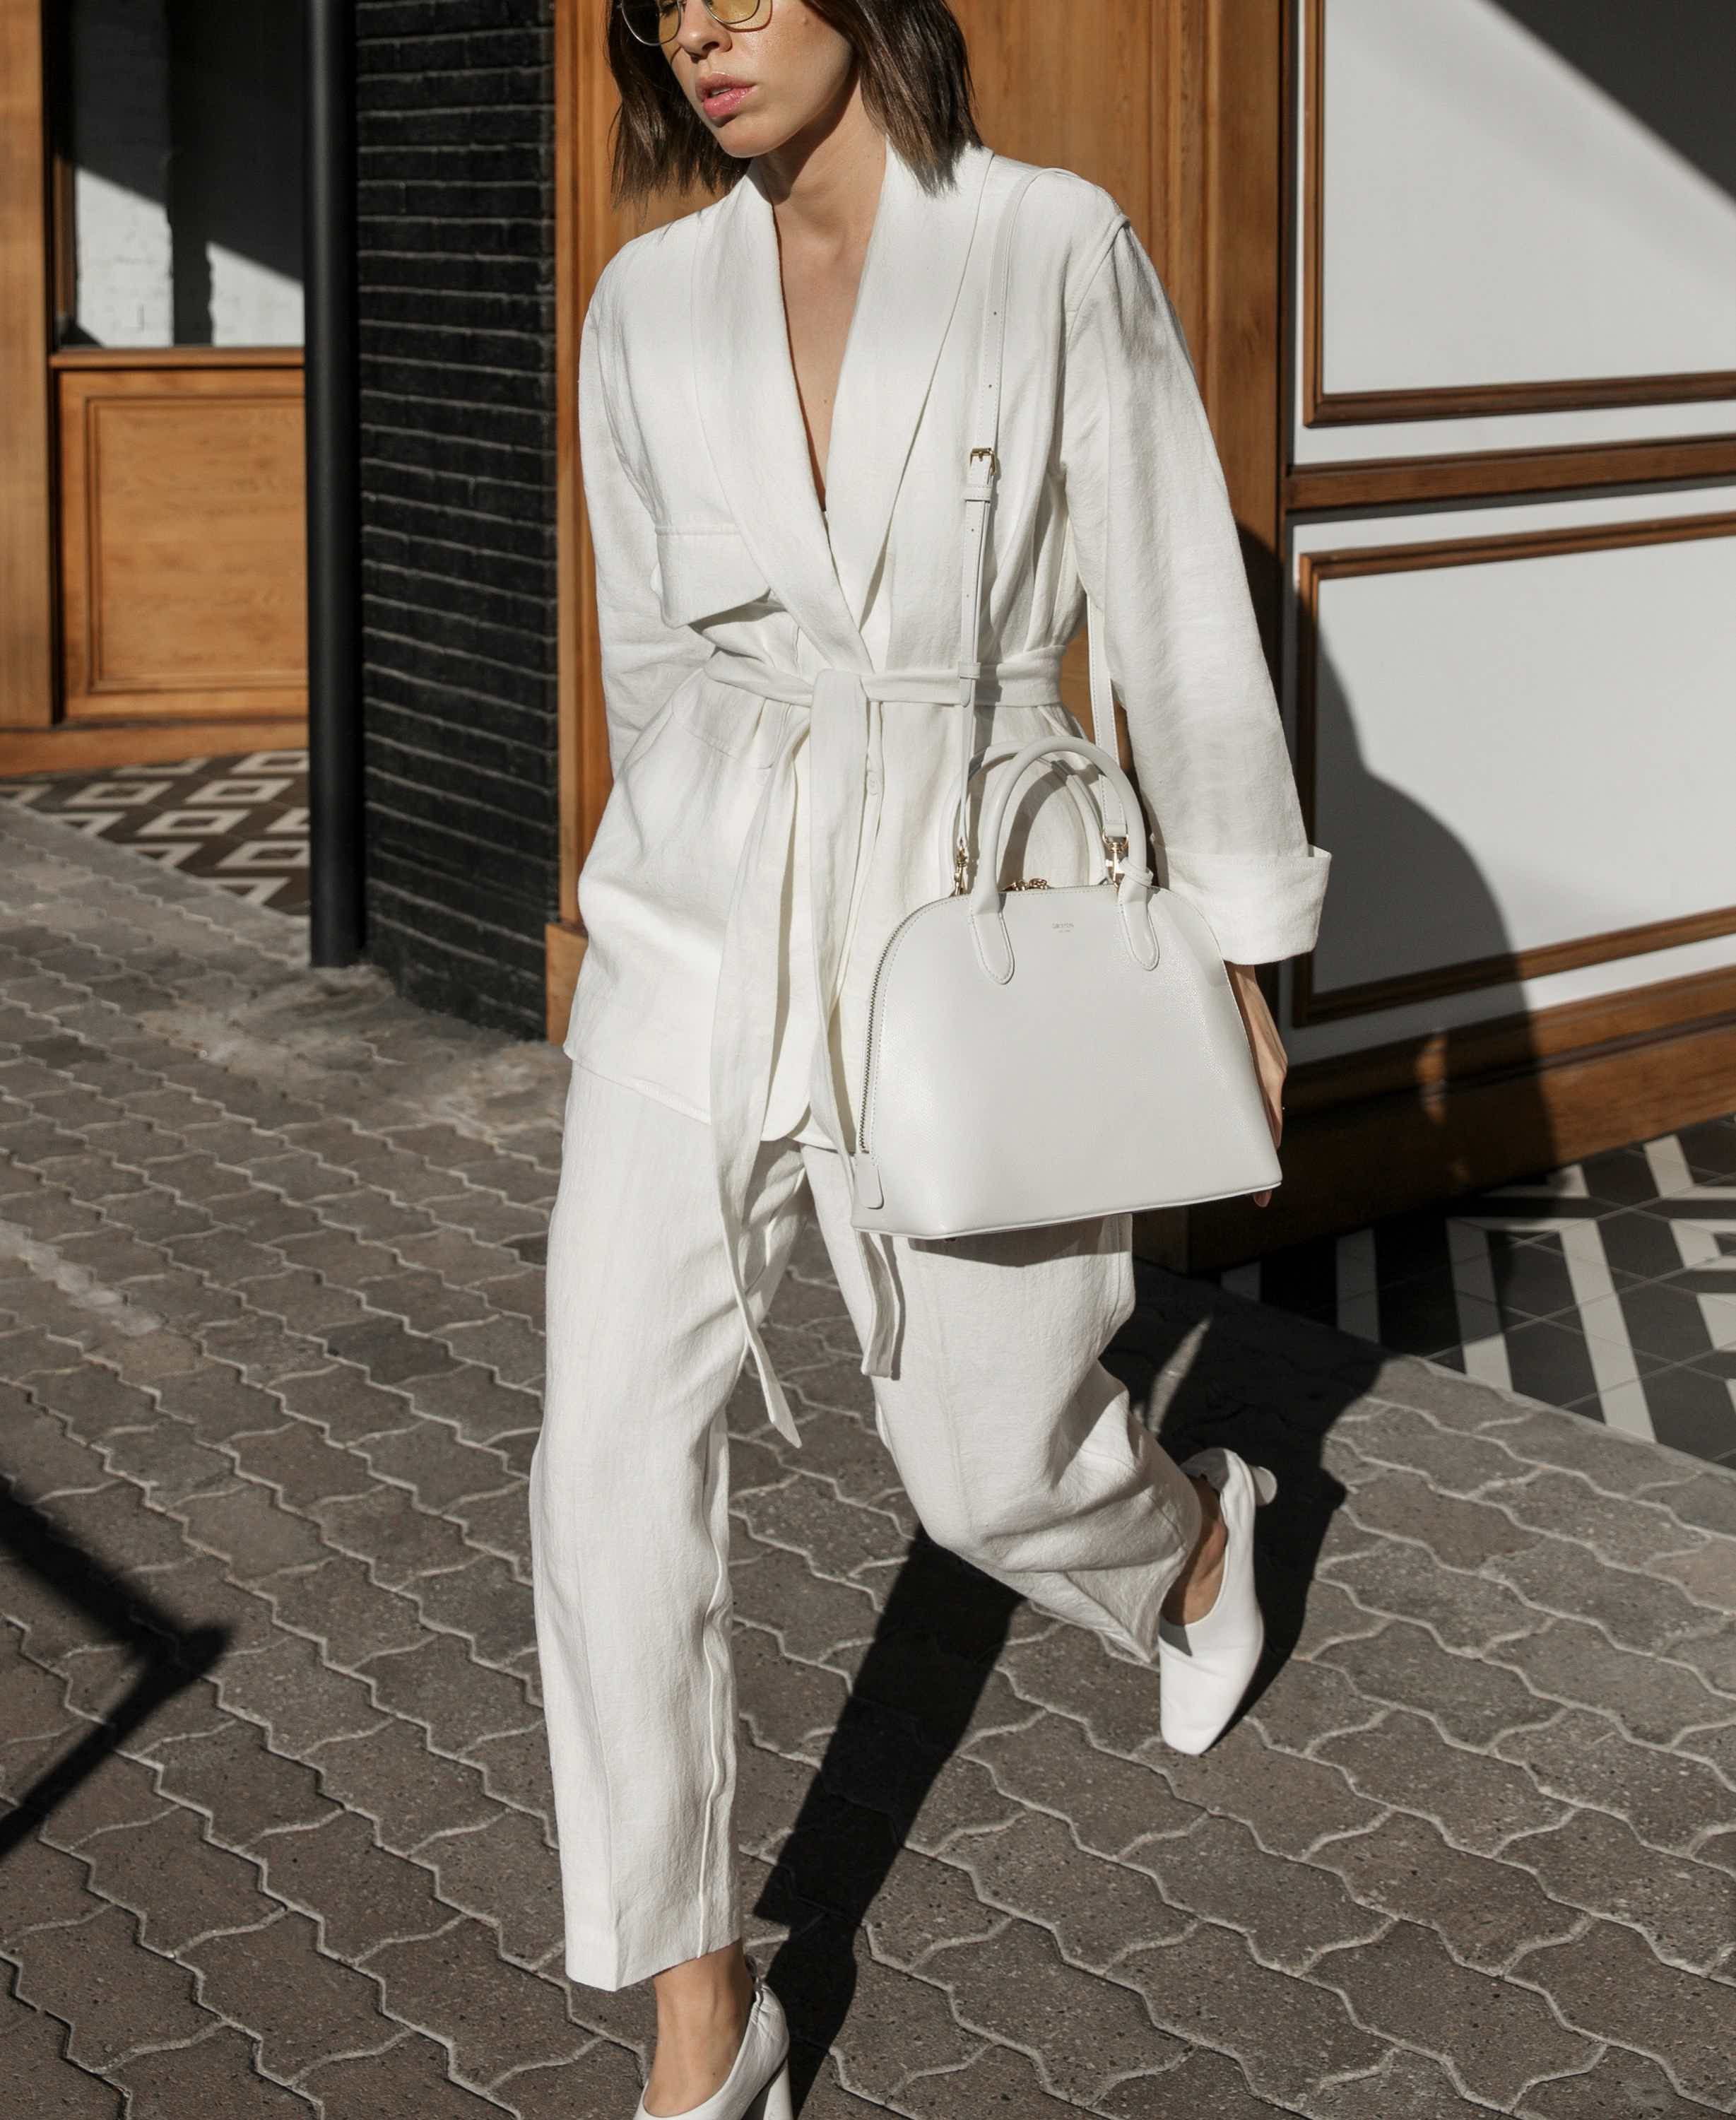 Kaity Modern in  an Oroton Linen Blazer with White grip top bag